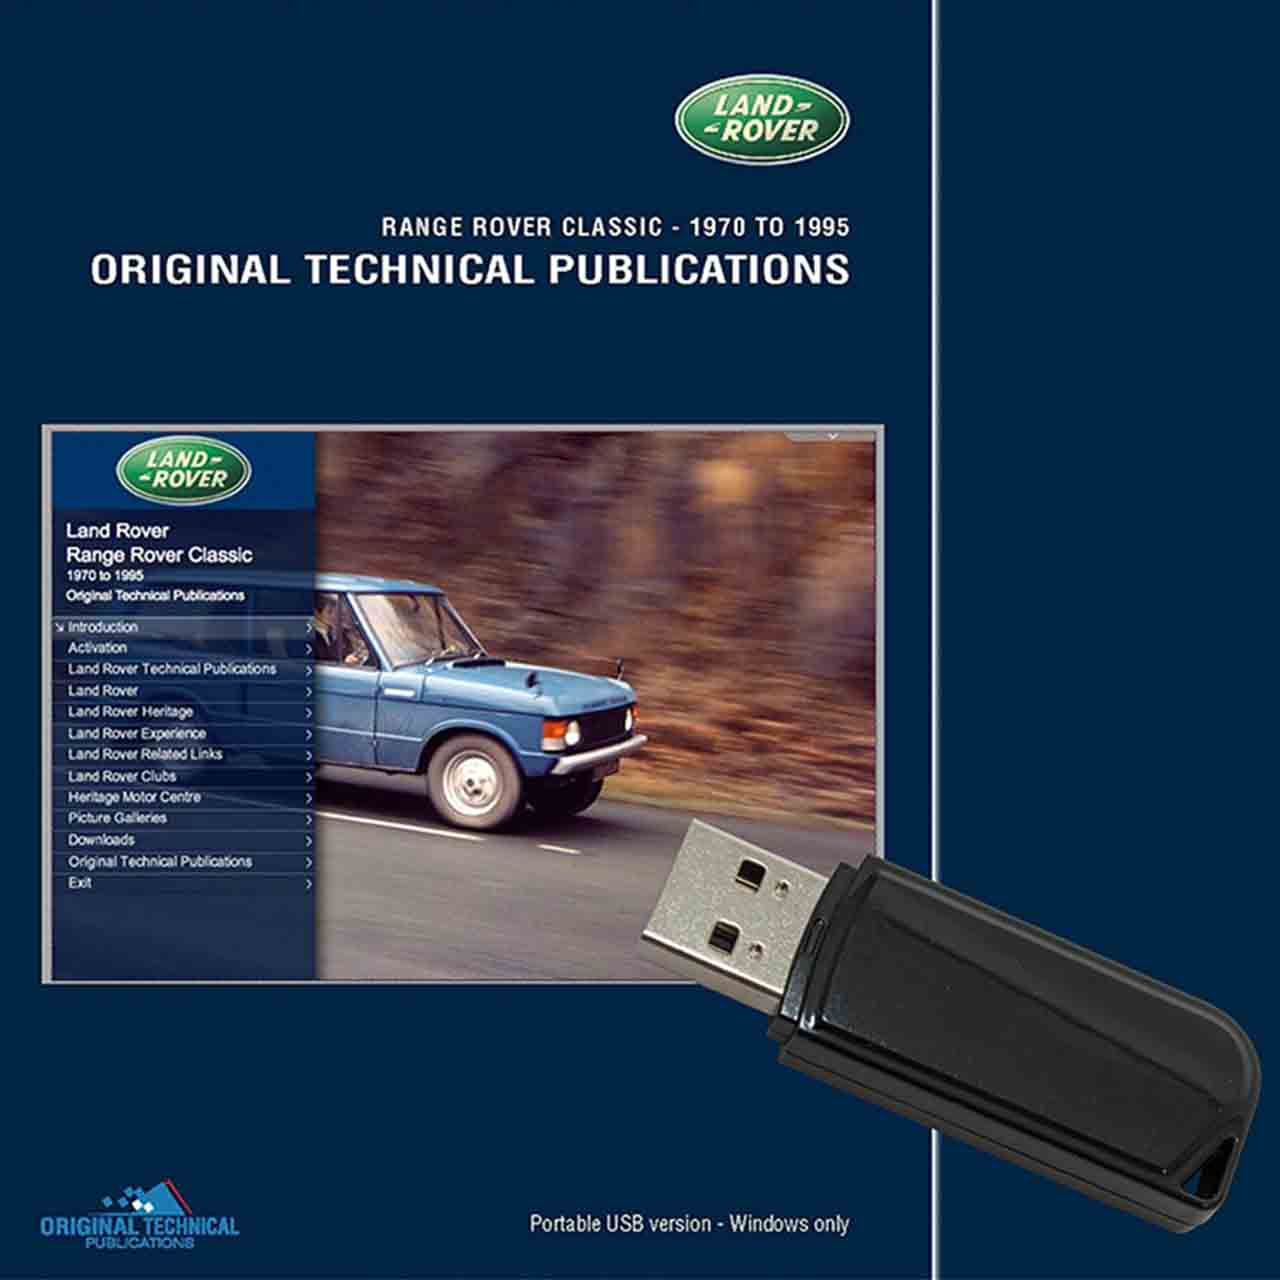 Range Rover Classic Original Technical Publications Portable Usb Range Rover Classic Land Rover GR2-06328